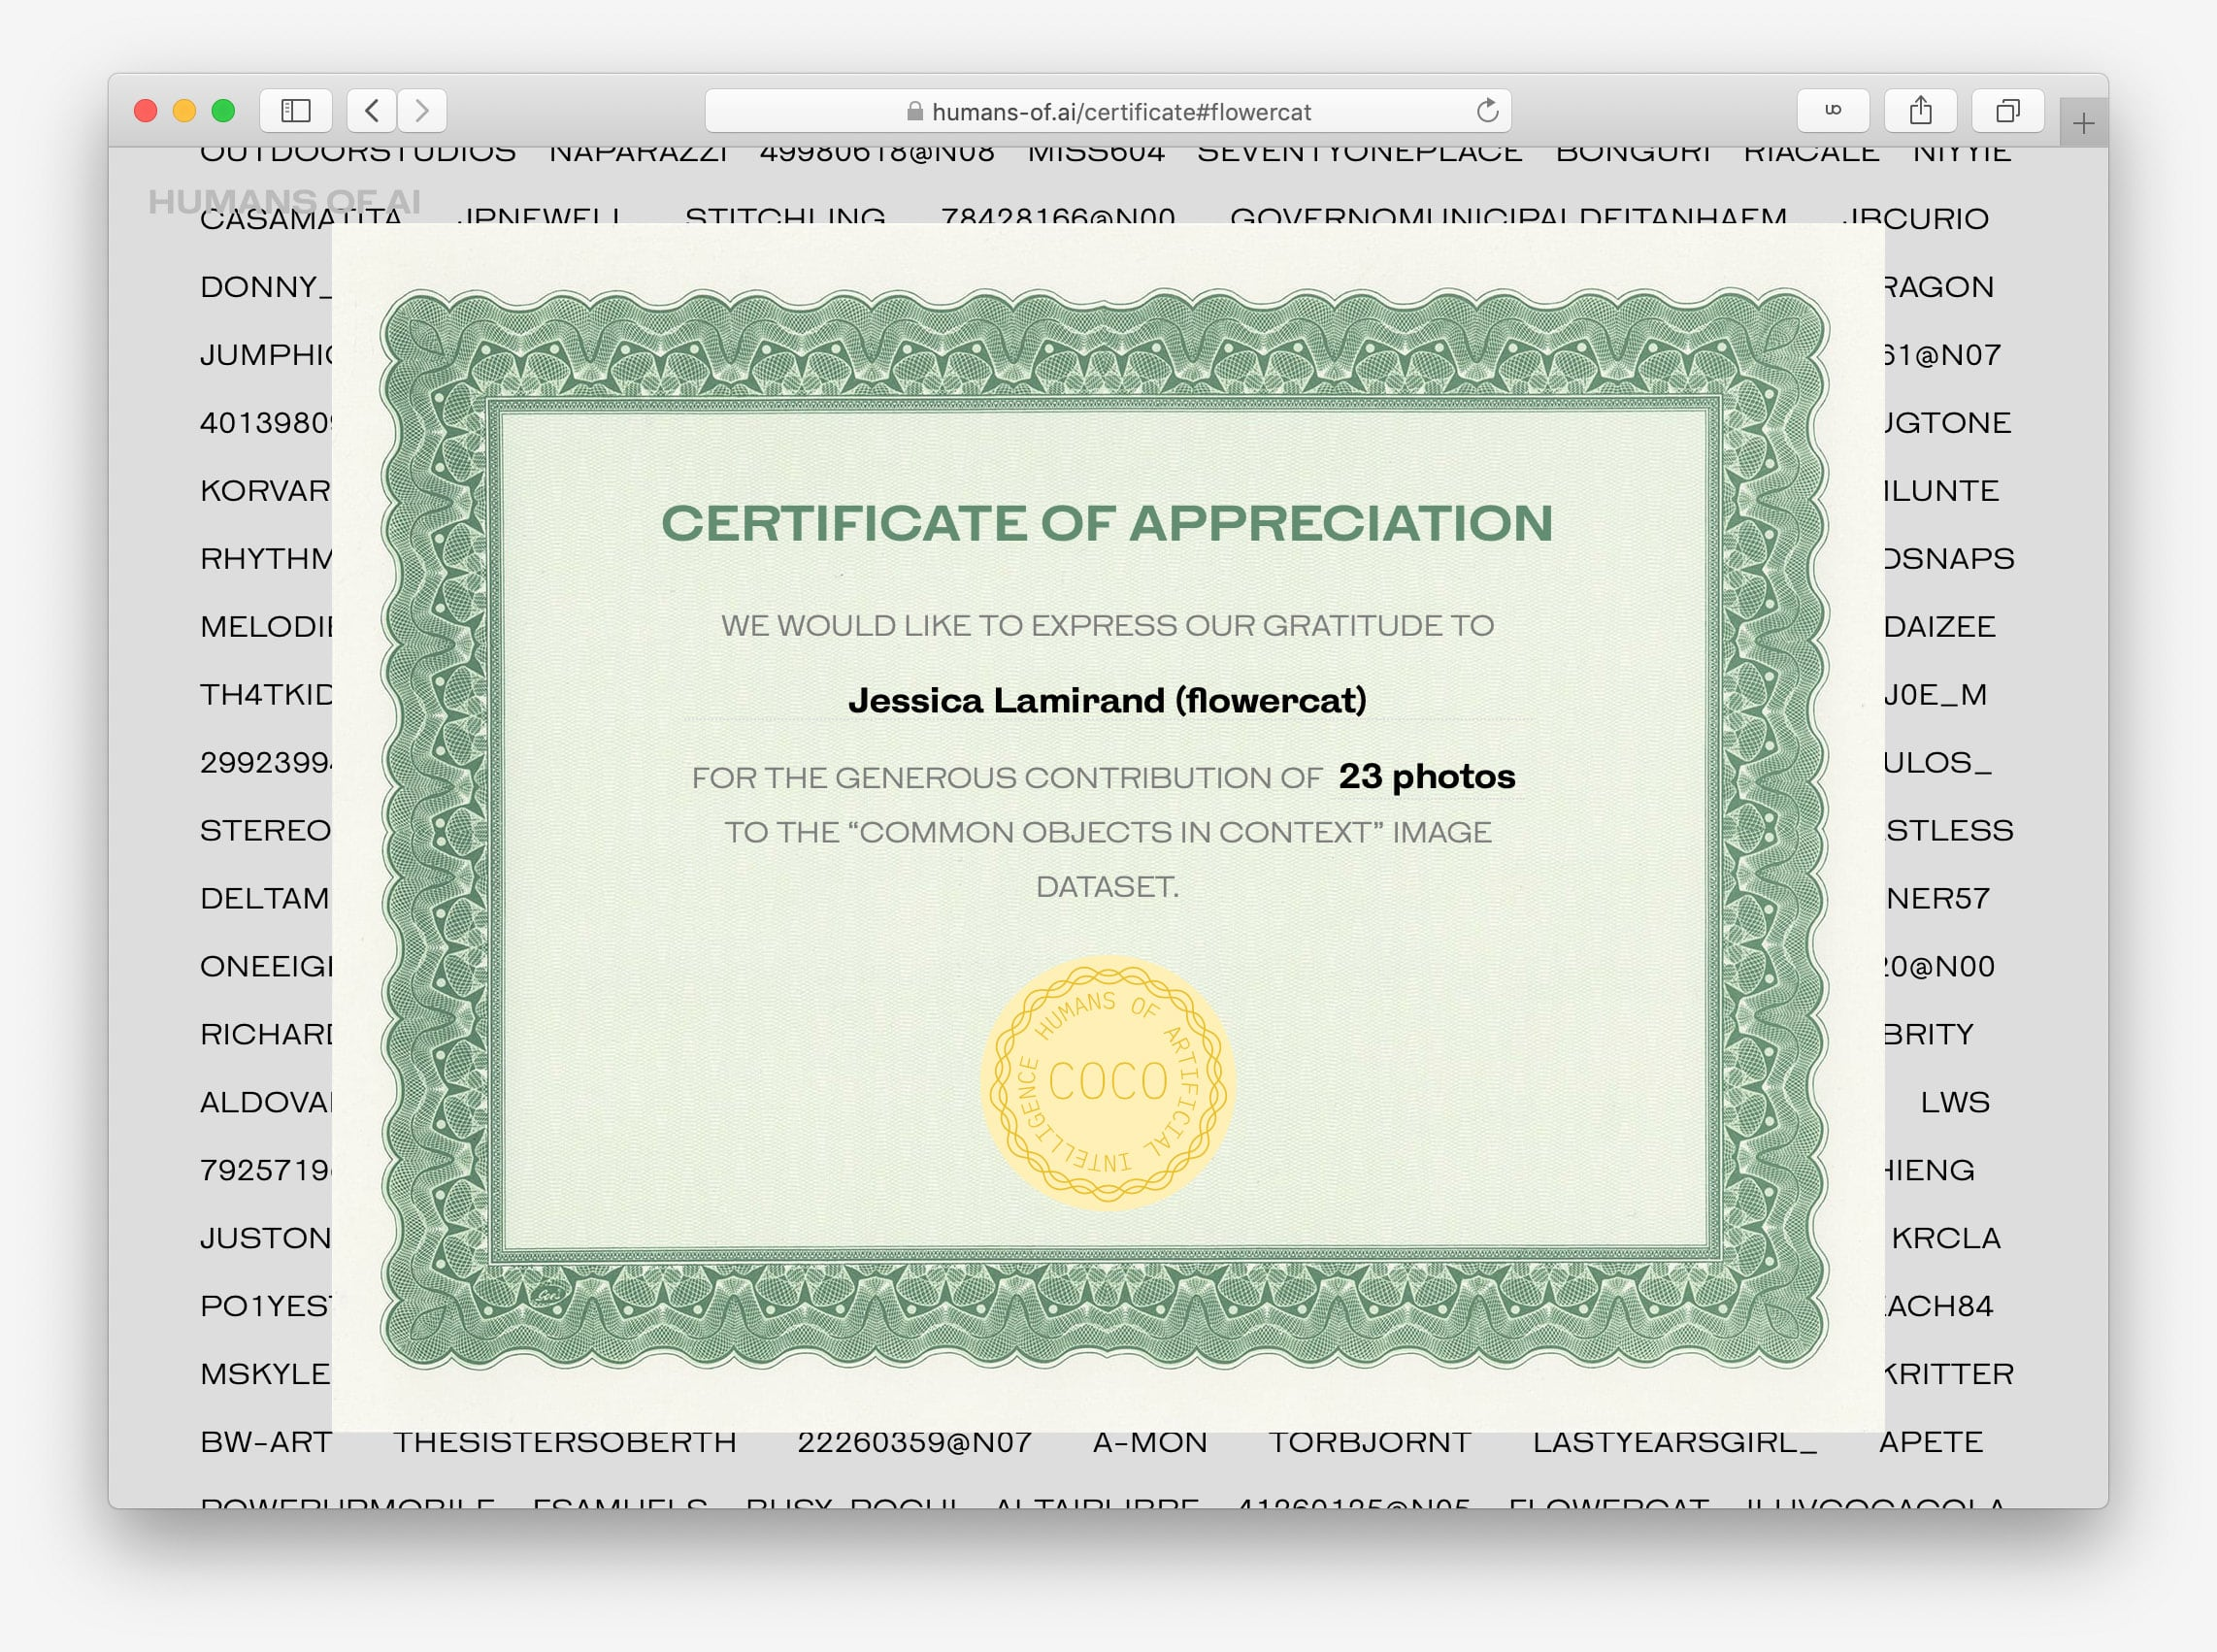 Humans of AI: Certificates. 34,248 Certificates (2019)